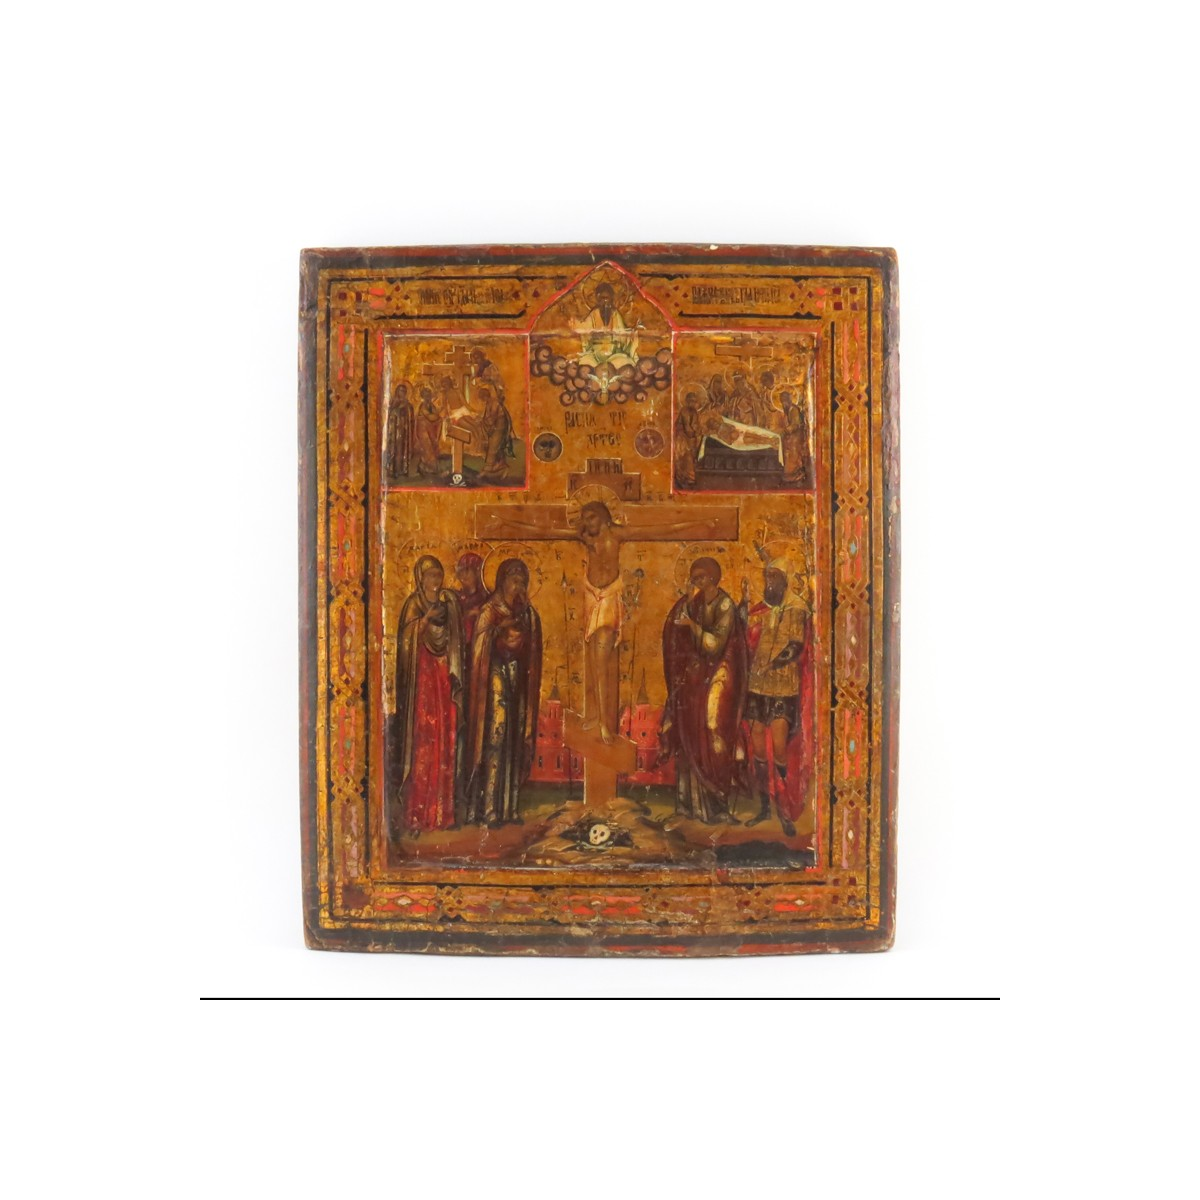 18th Century Russian Painted and Parcel Gilt Icon on Panel Depicting the Crucifixion of Christ. War